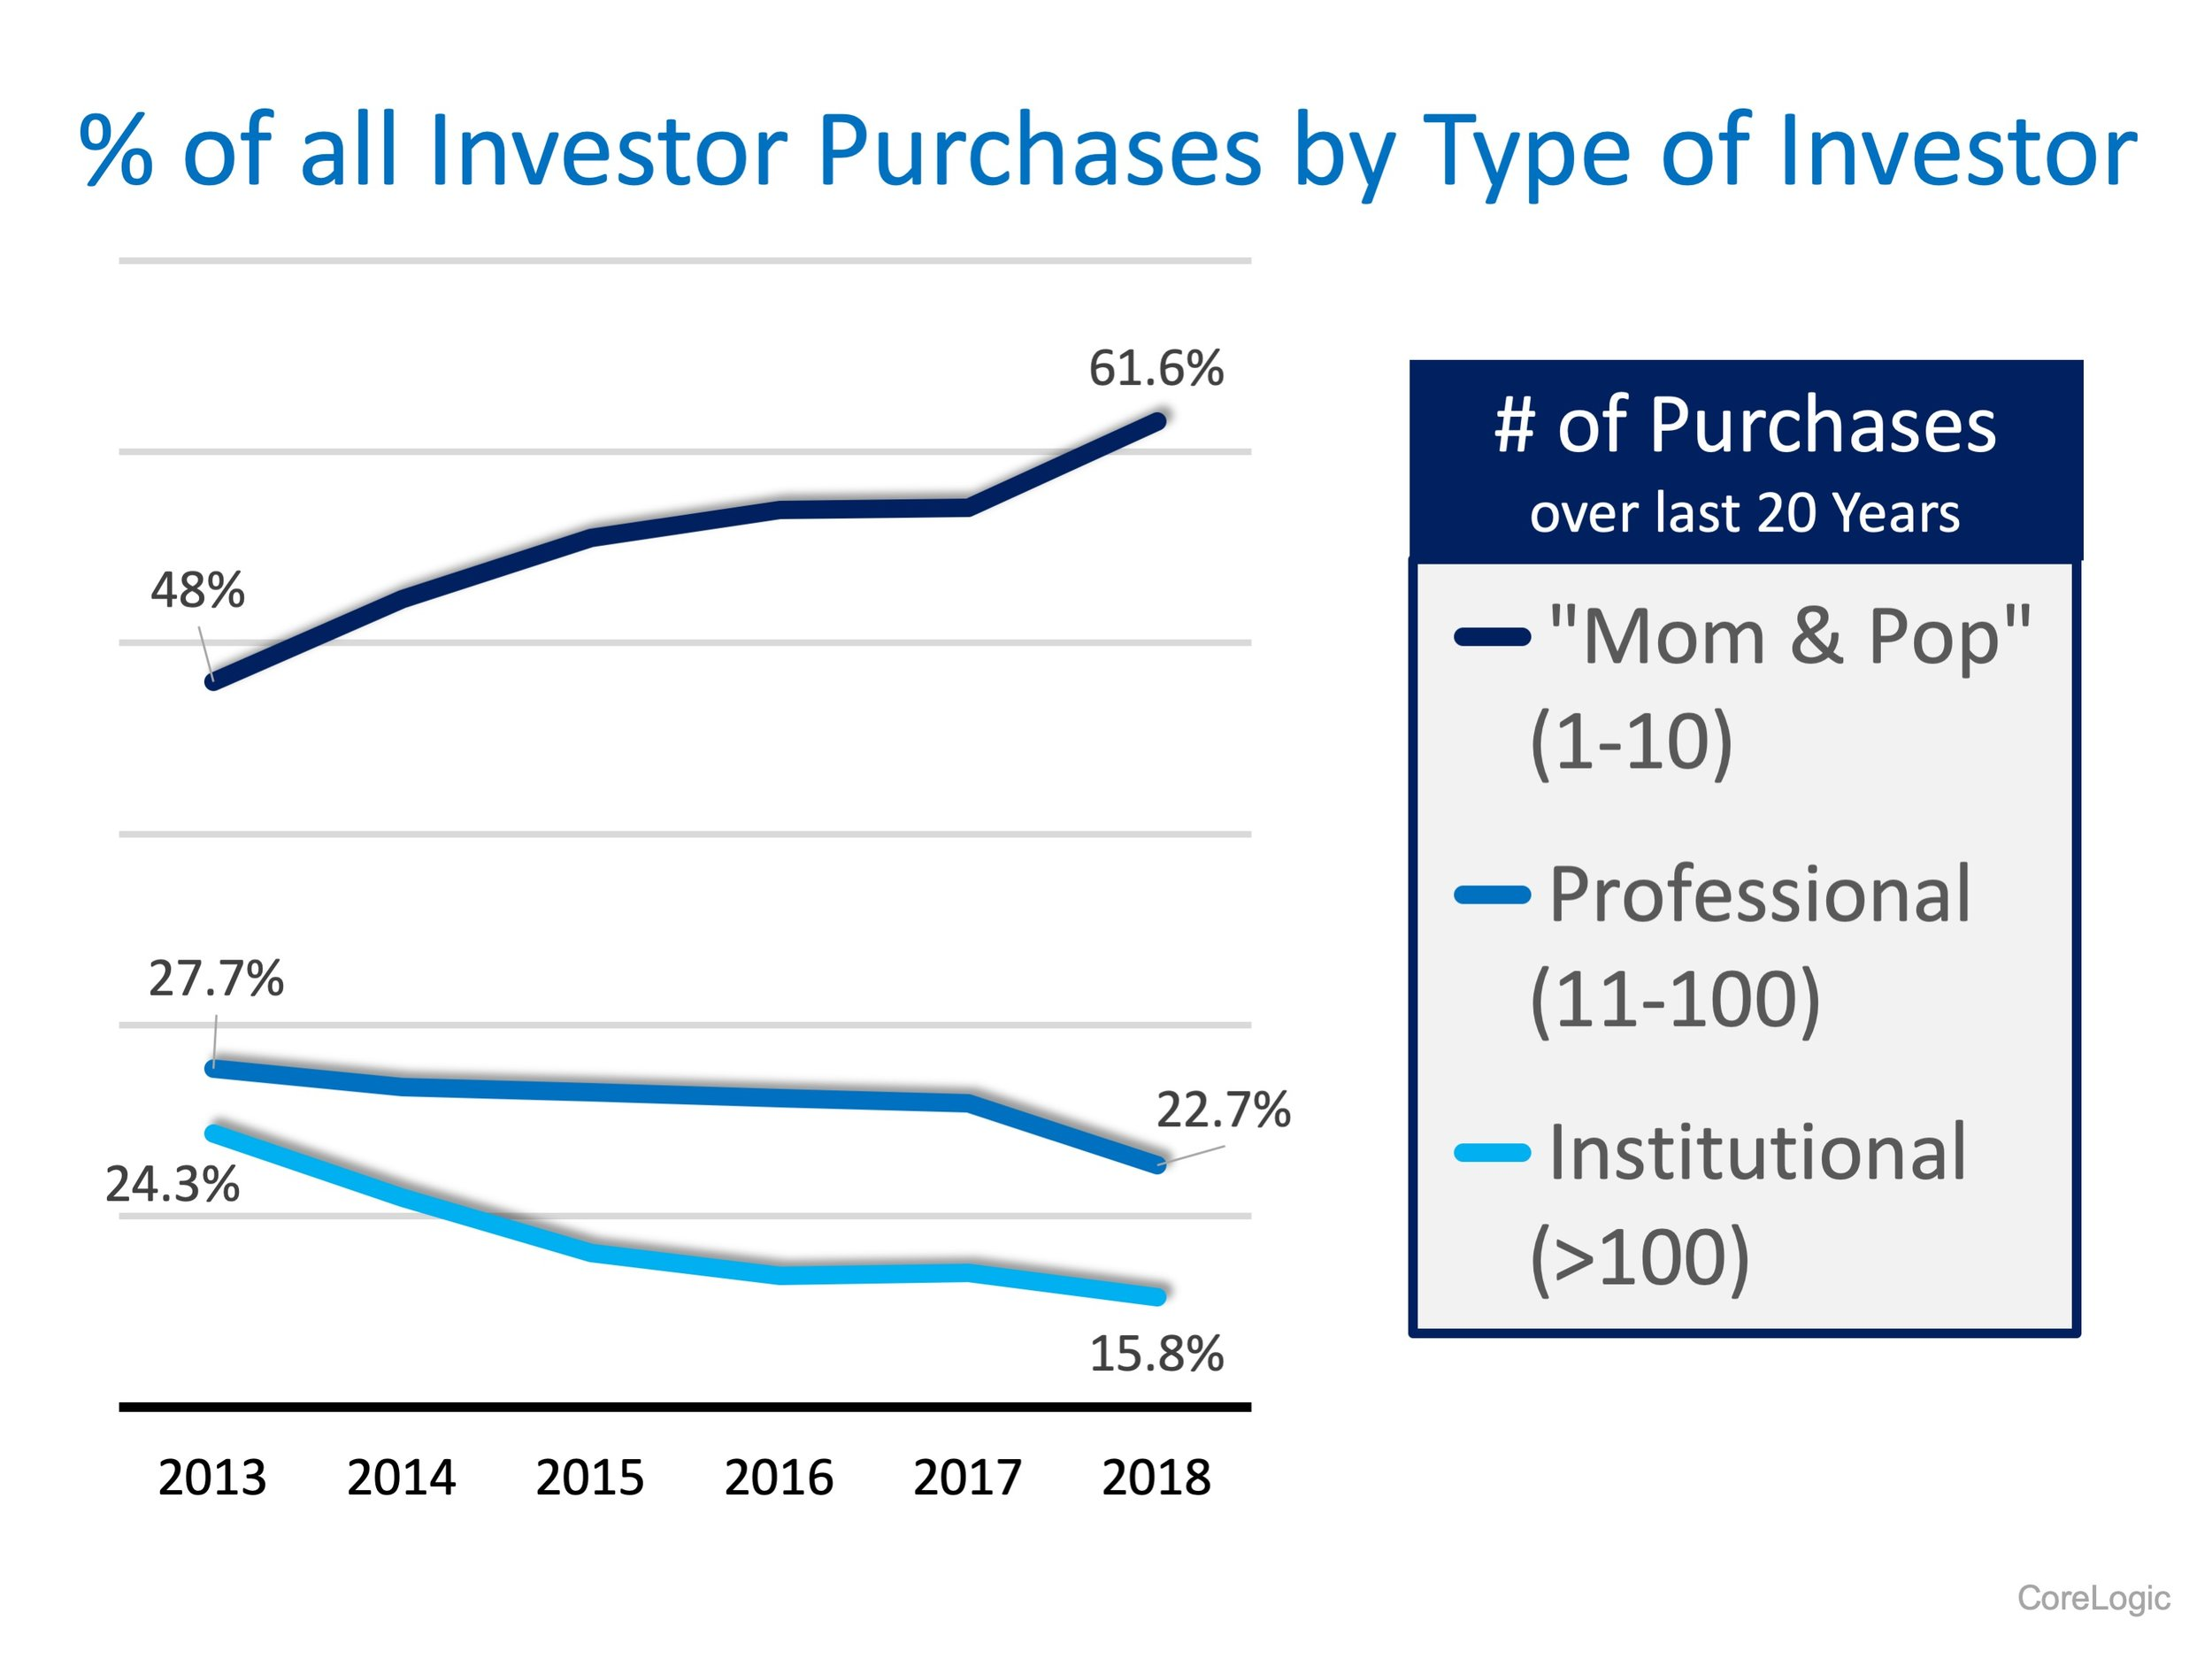 Graph showing investor purchases type